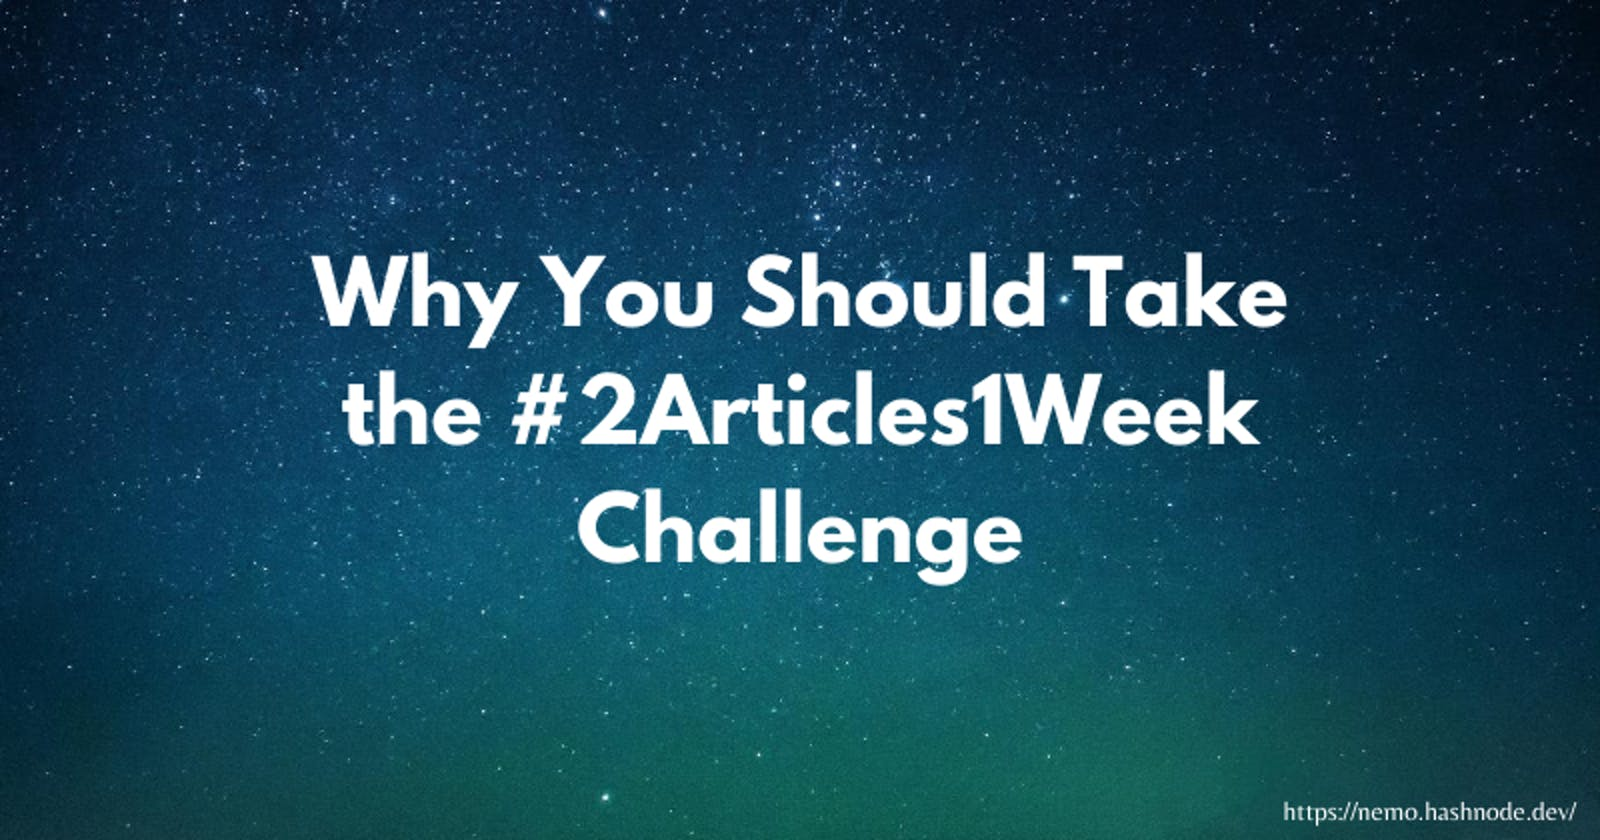 Why You Should Take the #2Articles1Week Challenge